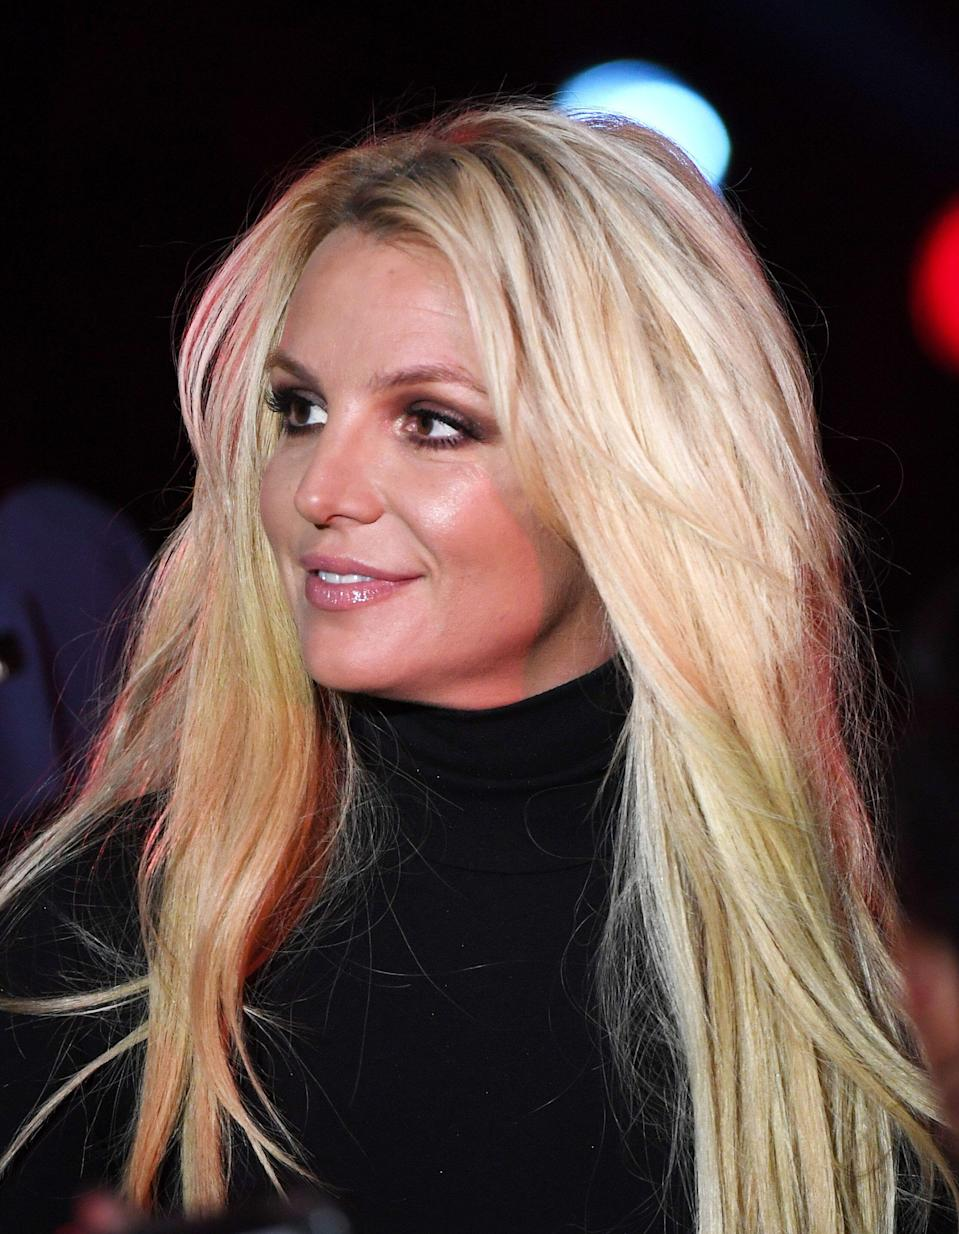 Cantora Britney Spears (Foto: Ethan Miller/Getty Images)